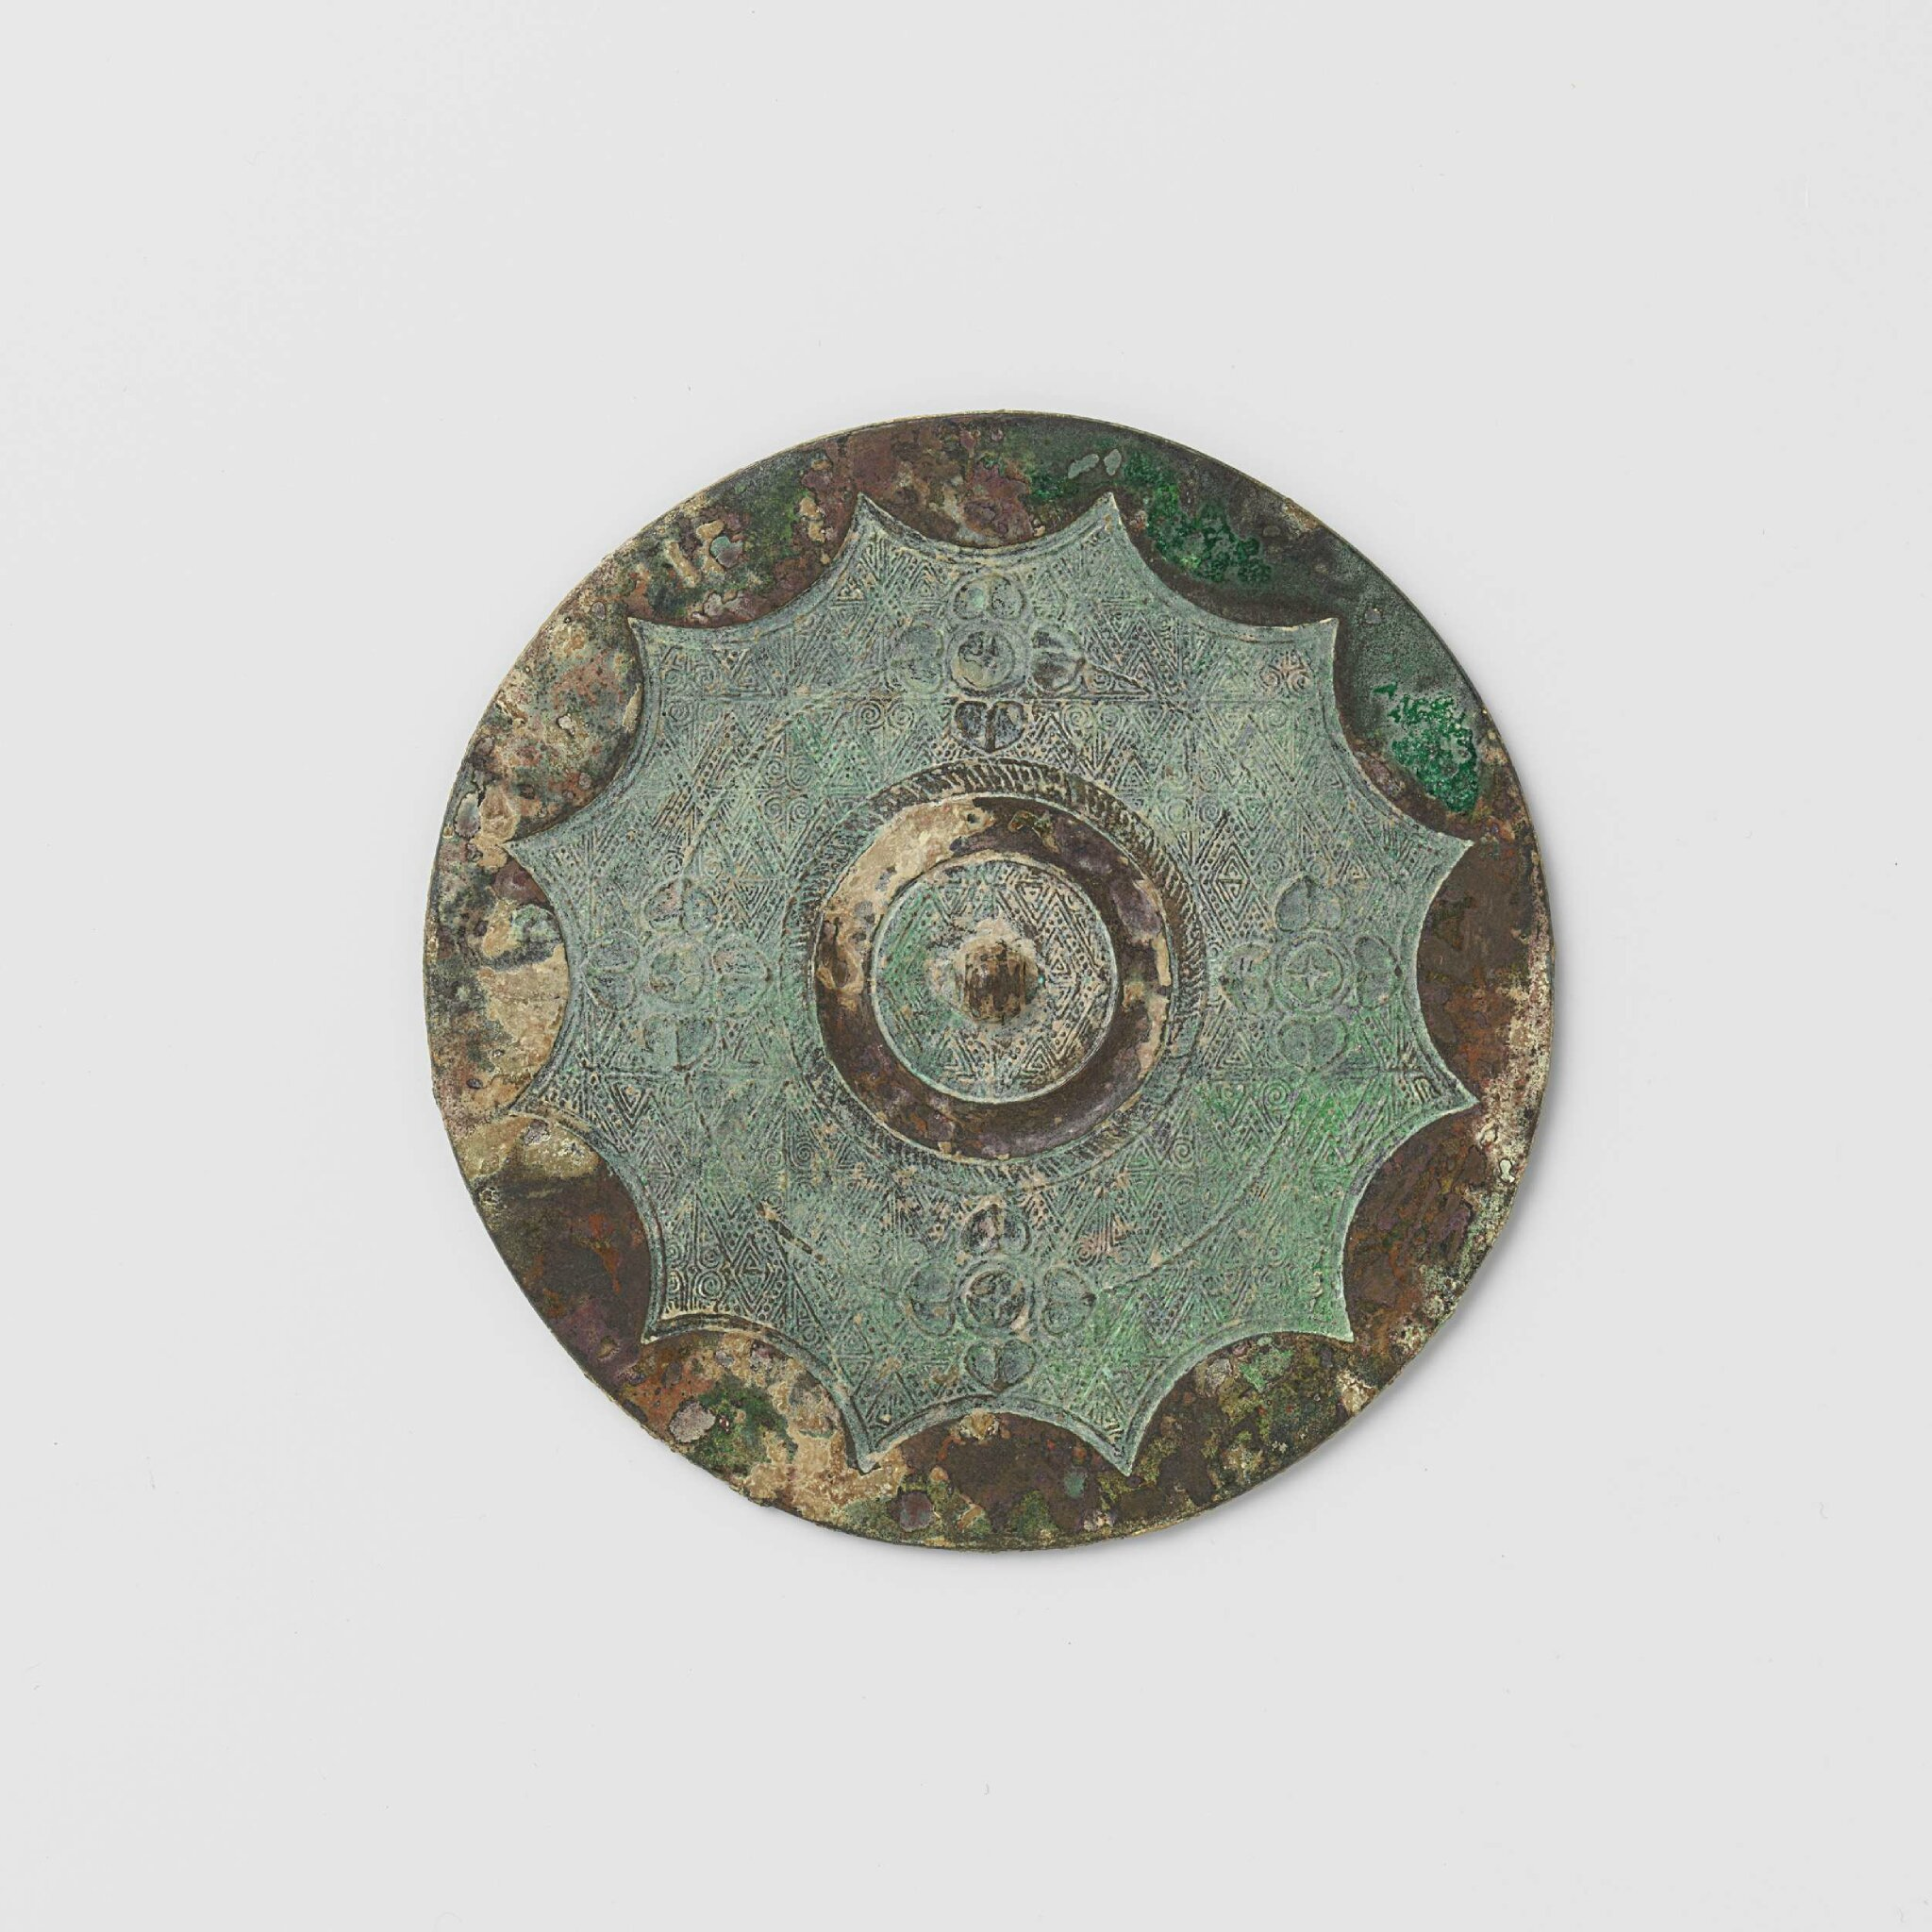 Bronze mirror with scalloped edge and rosettes, Warring States Period, 500-200 BCE